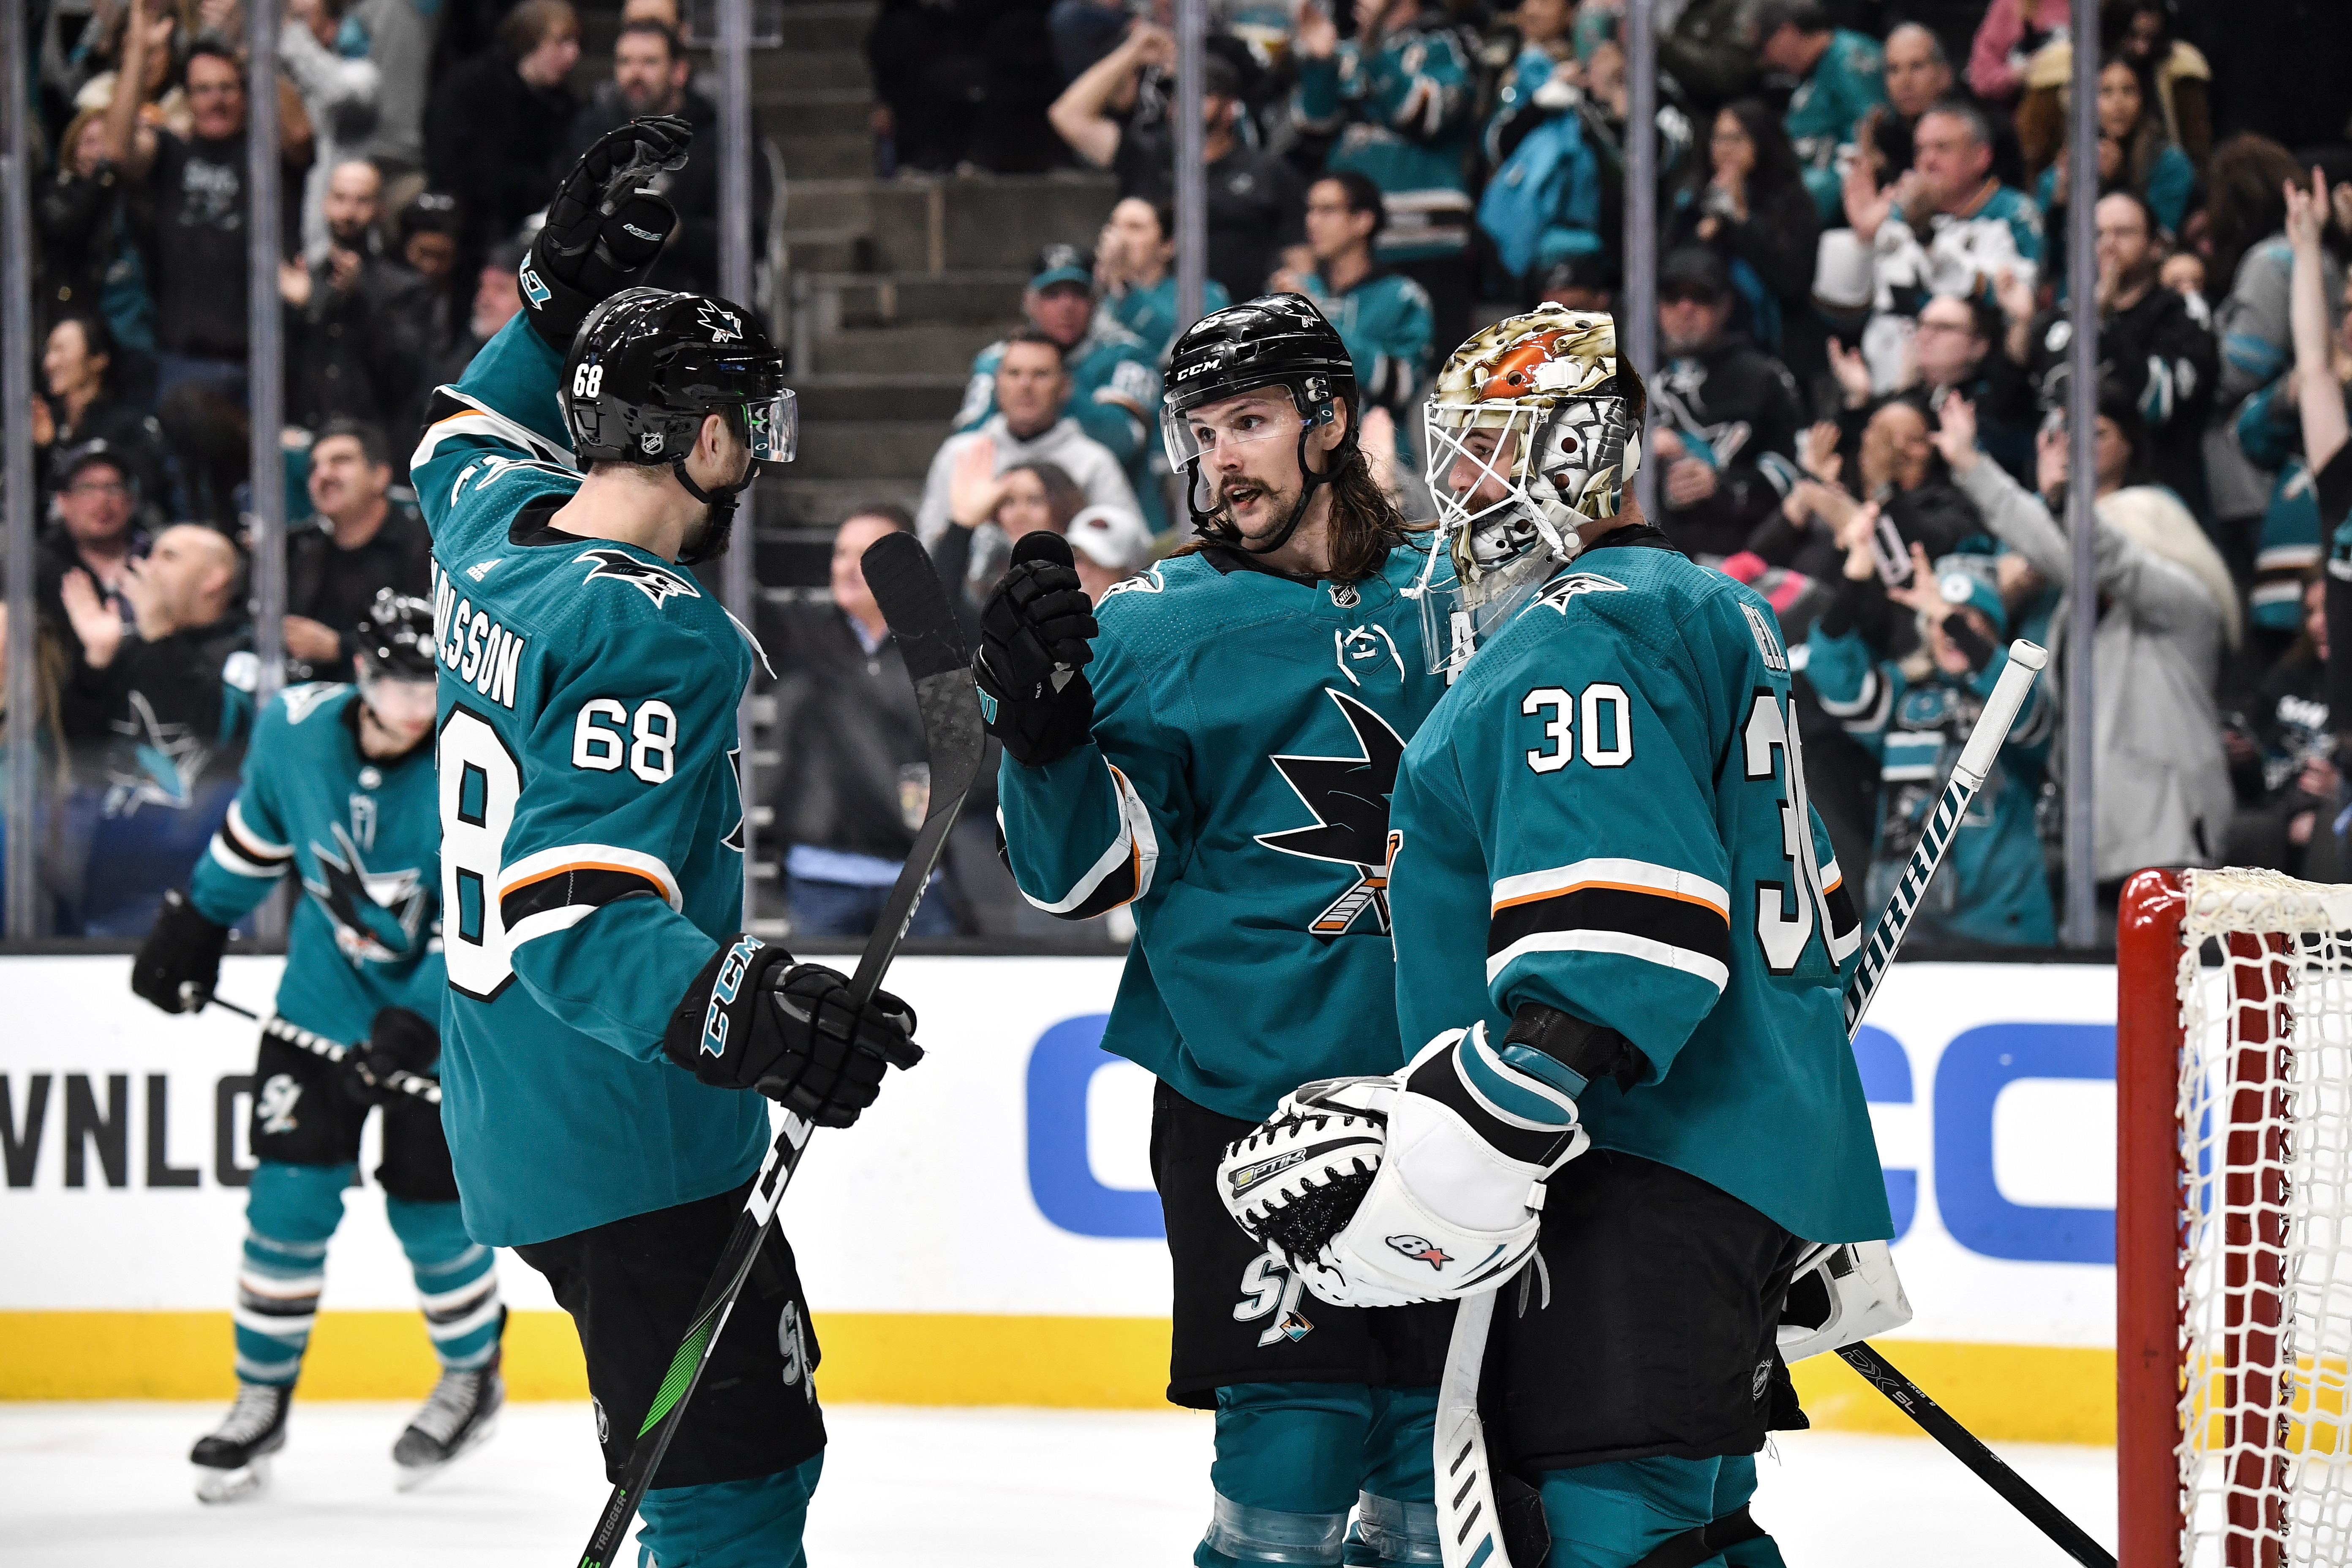 SAN JOSE, CA - JANUARY 11: Aaron Dell #30, Melker Karlsson #68 and Erik Karlsson #65 of the San Jose Sharks celebrate the win against the Dallas Stars at SAP Center on January 11, 2020 in San Jose, California.